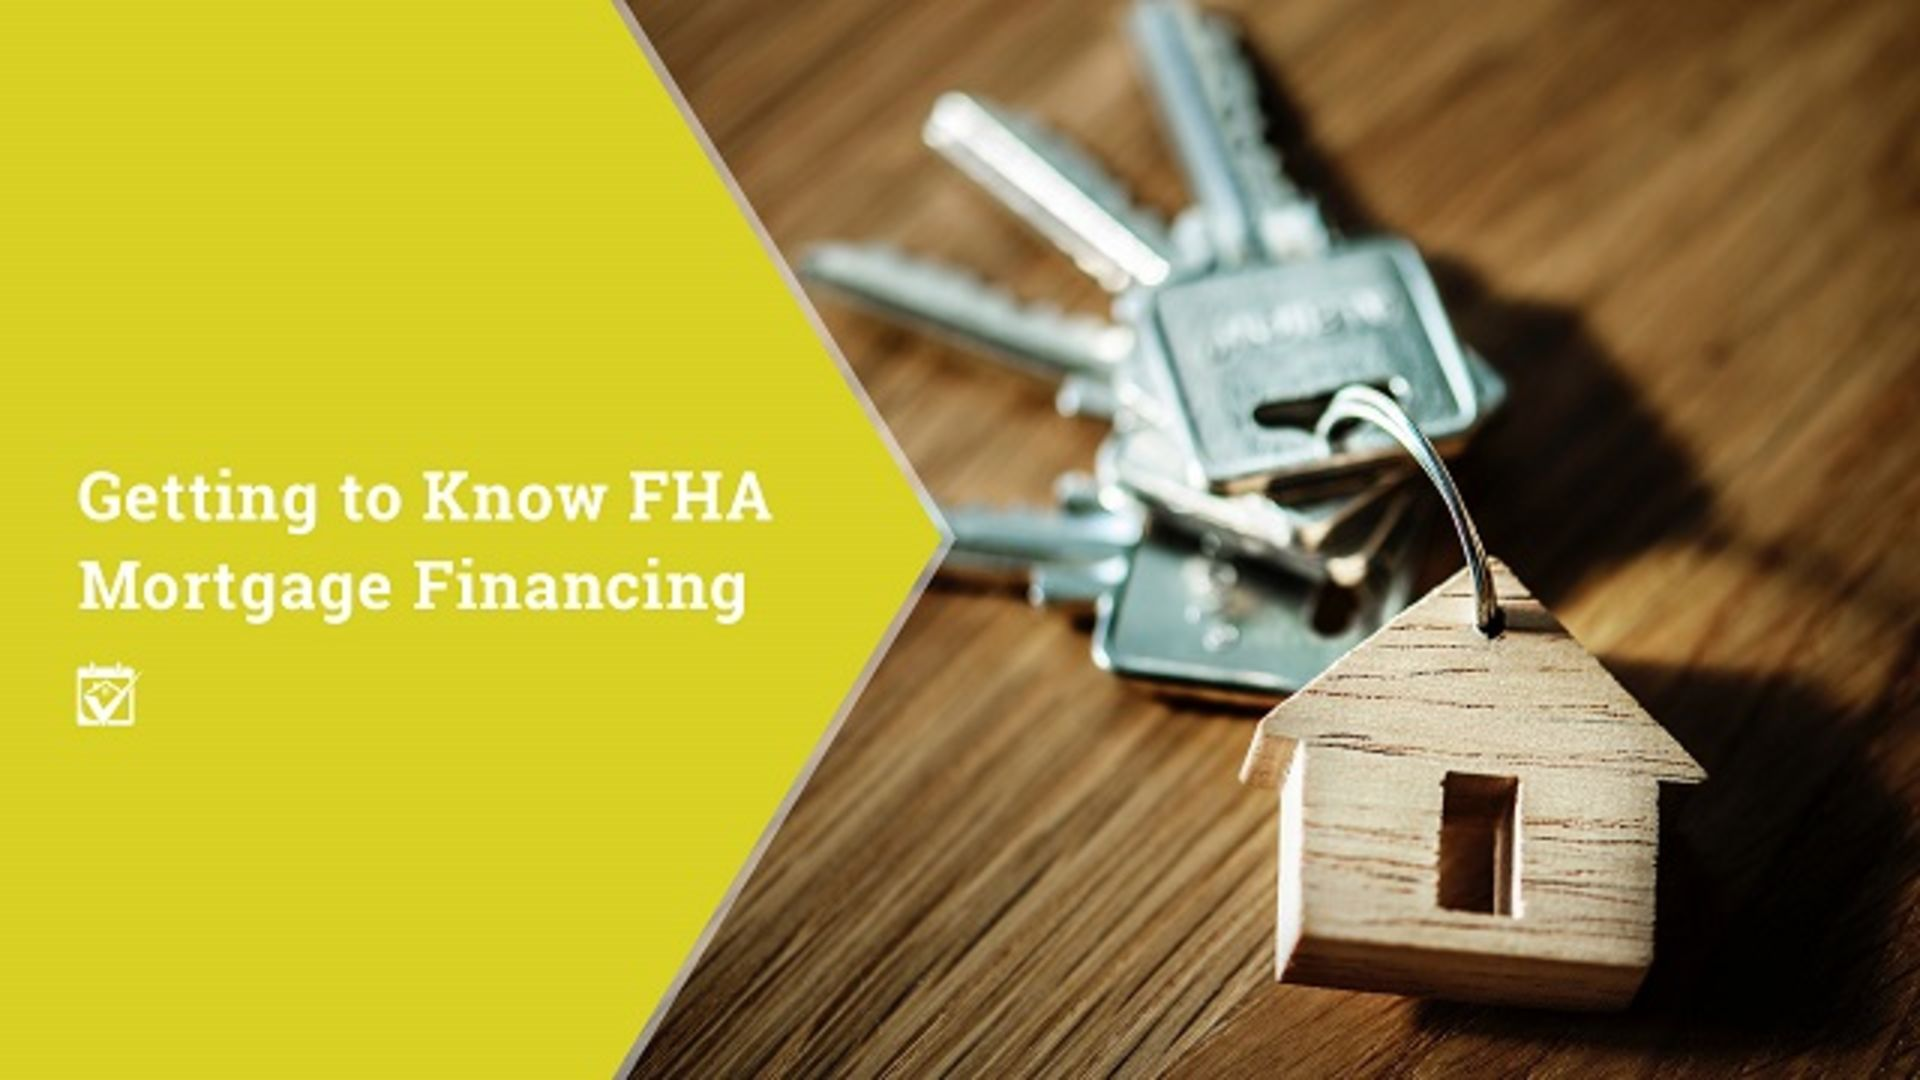 Getting to Know FHA Mortgage Financing